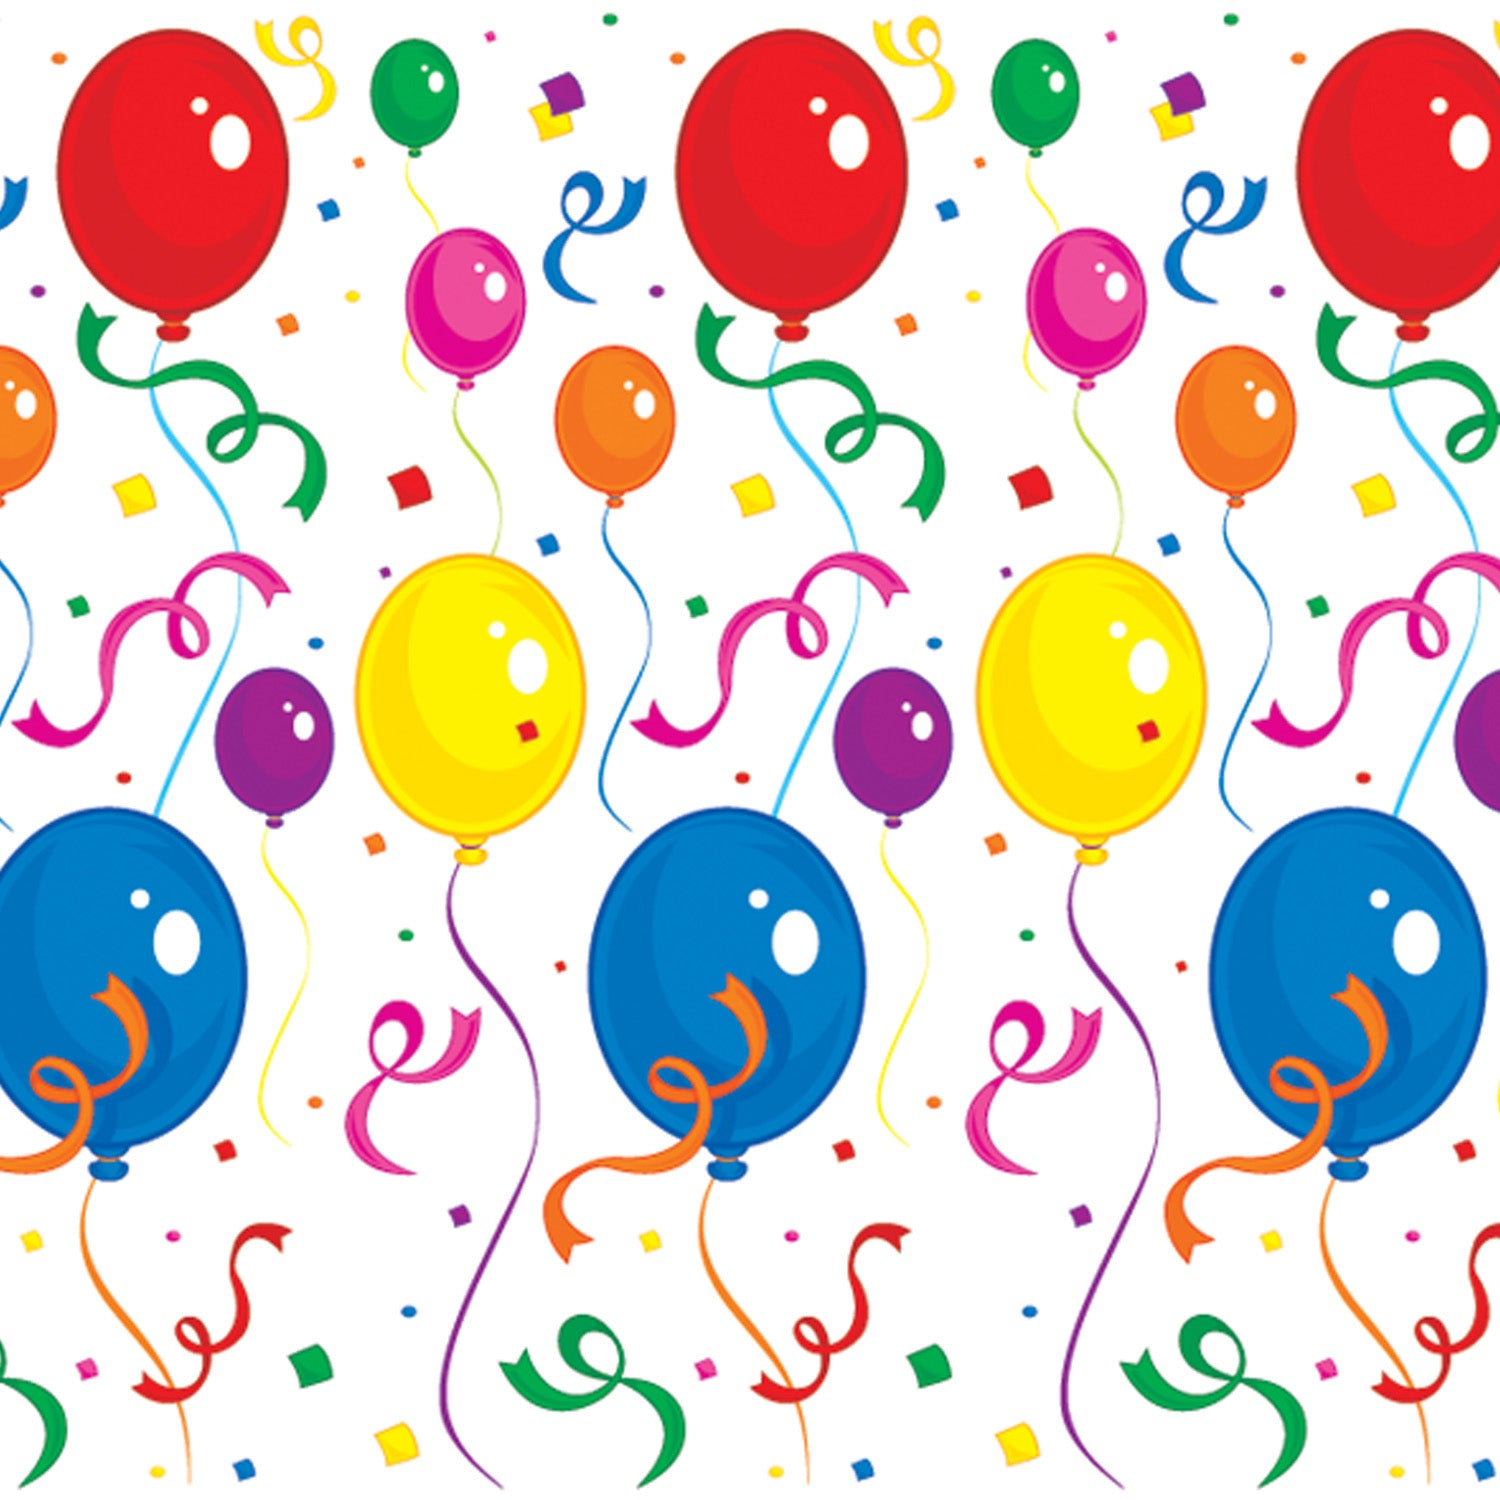 Balloons & Confetti Backdrop by Beistle - Birthday Party Supplies Decorations